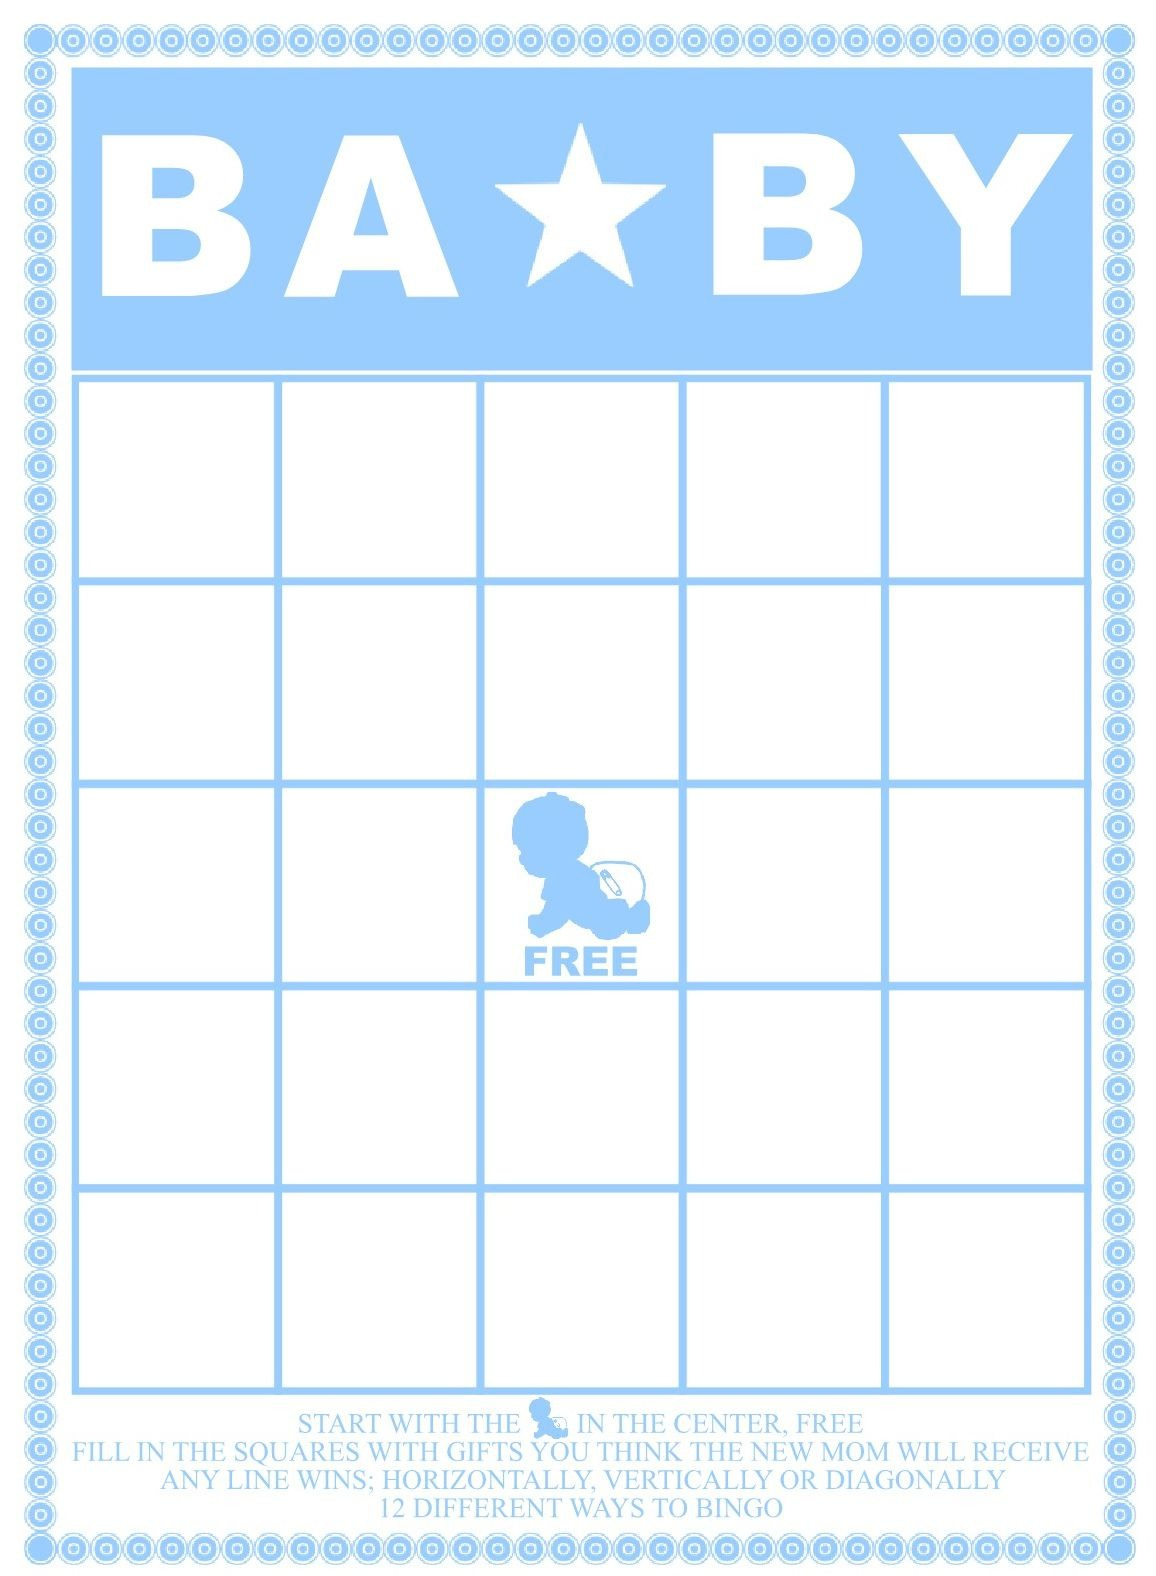 29 Sets Of Free Baby Shower Bingo Cards Pertaining To Baby Bingo - Printable Baby Shower Bingo Games Free